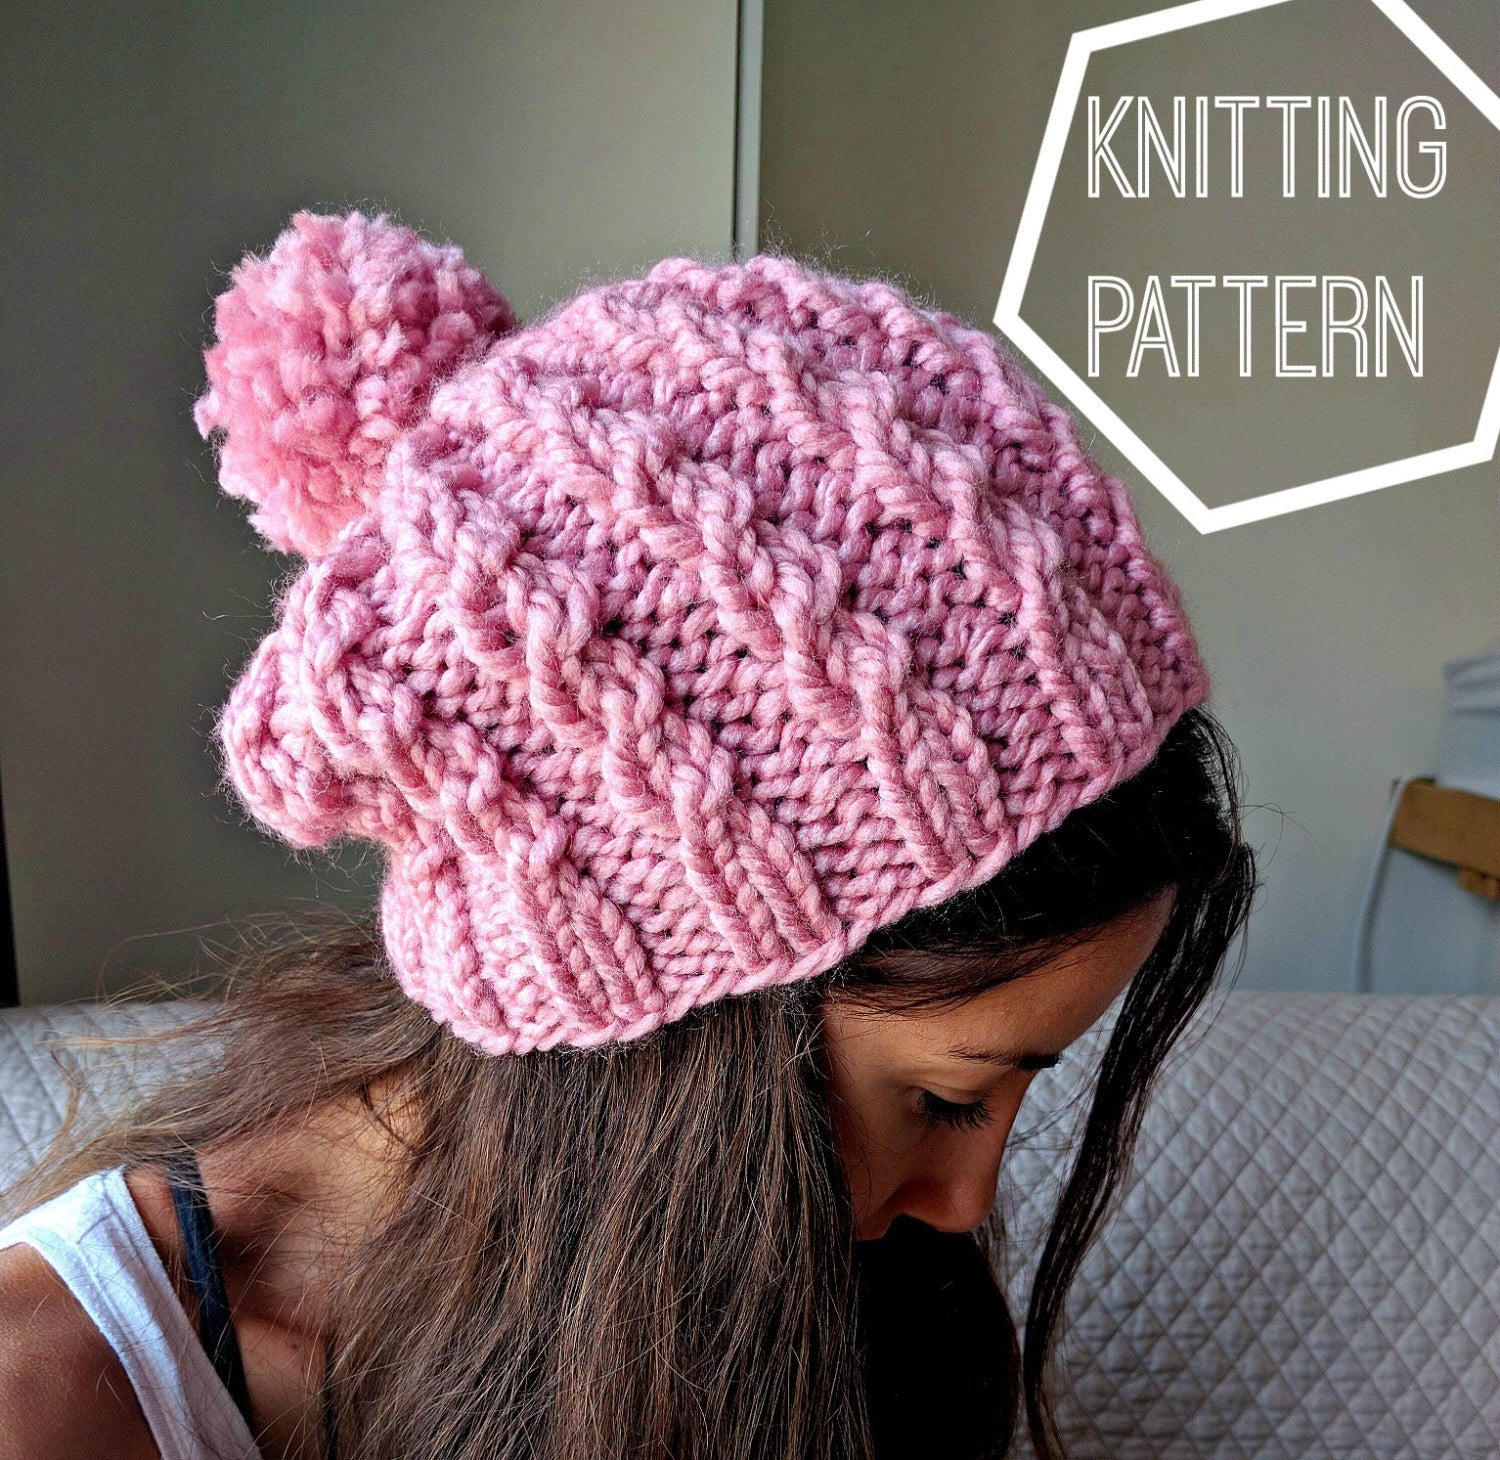 Easy Knit Hat Pattern For Beginners Easy Cable Knit Hat Pattern Cable Knit Beanie Pattern Simple Cable Knit Beanie Pattern Easy Knitting Pattern Knit Slouchy Beanie Pattern